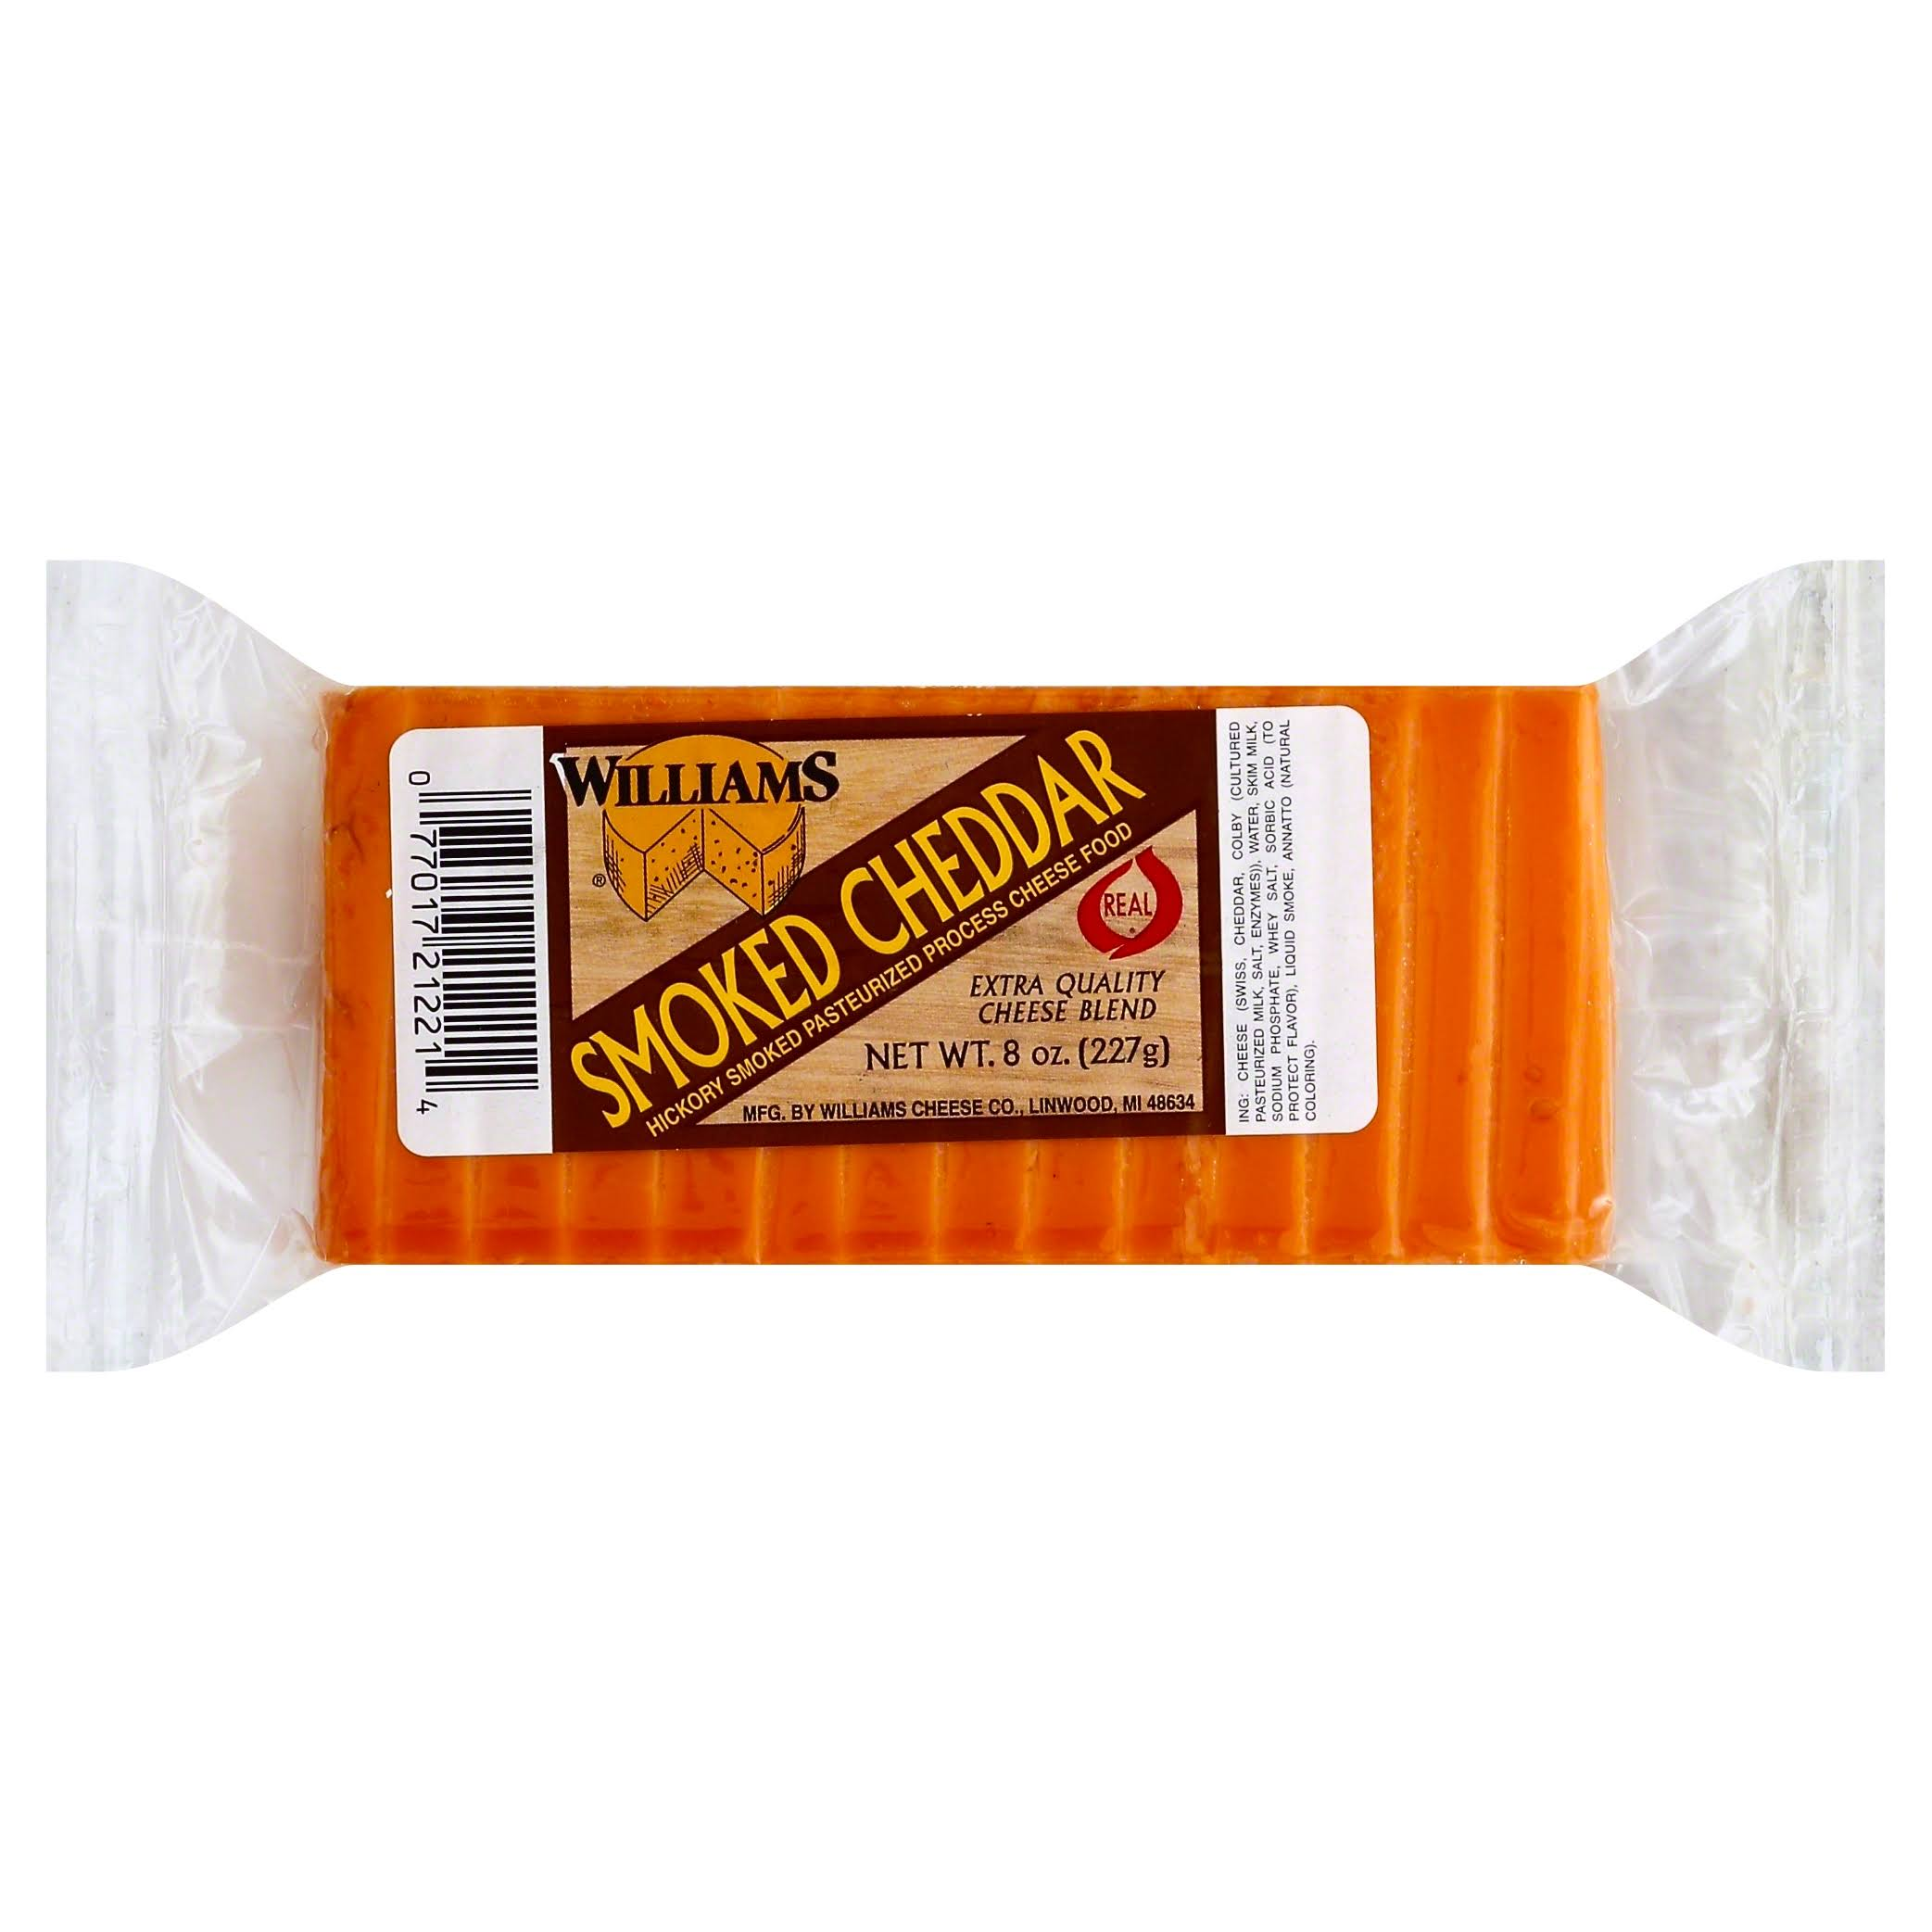 Williams Smoked Cheddar Cheese - 8oz